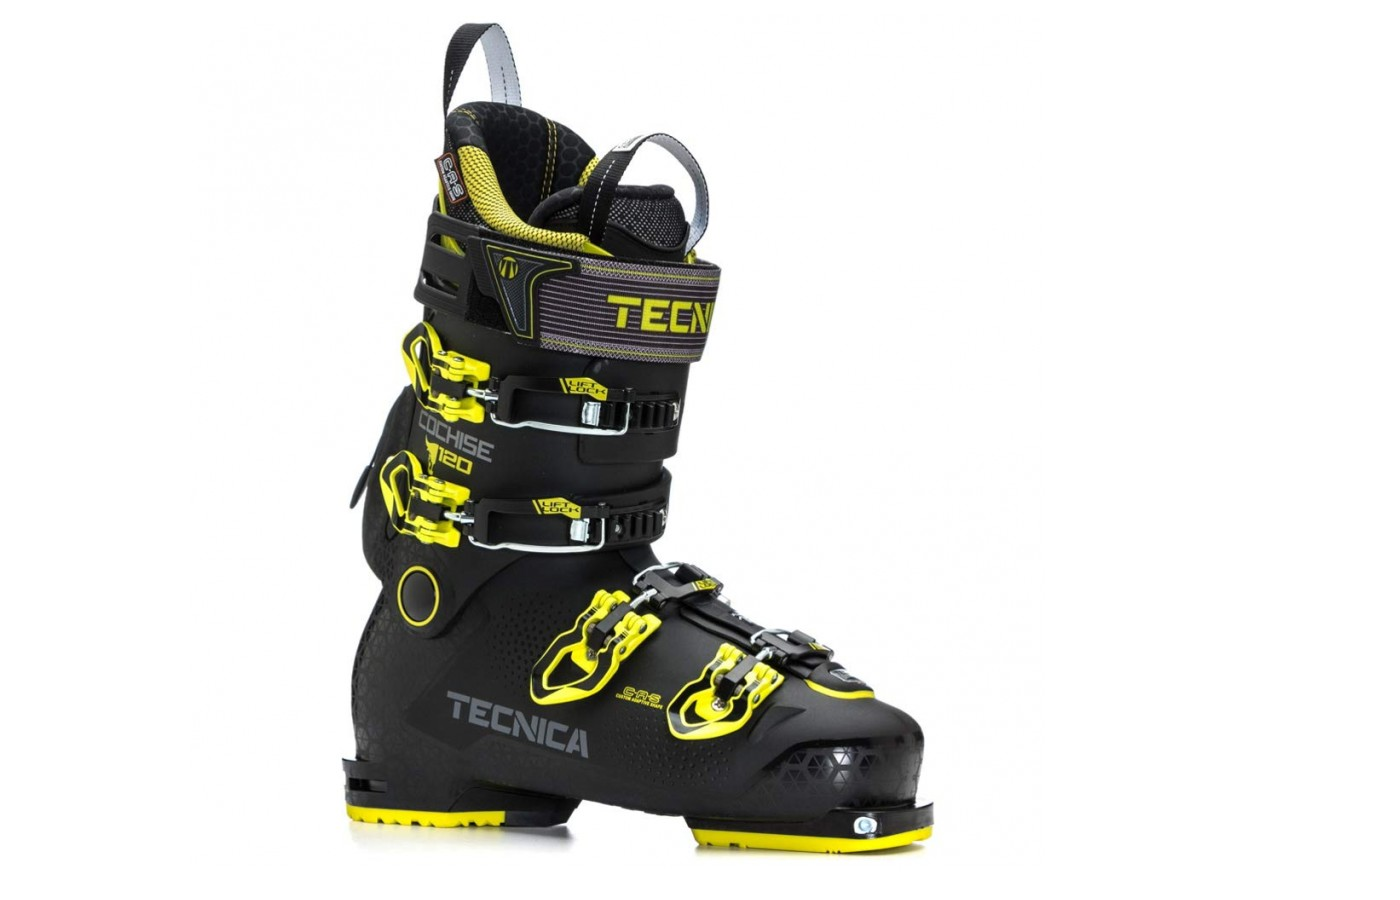 These ski boots are versatile.